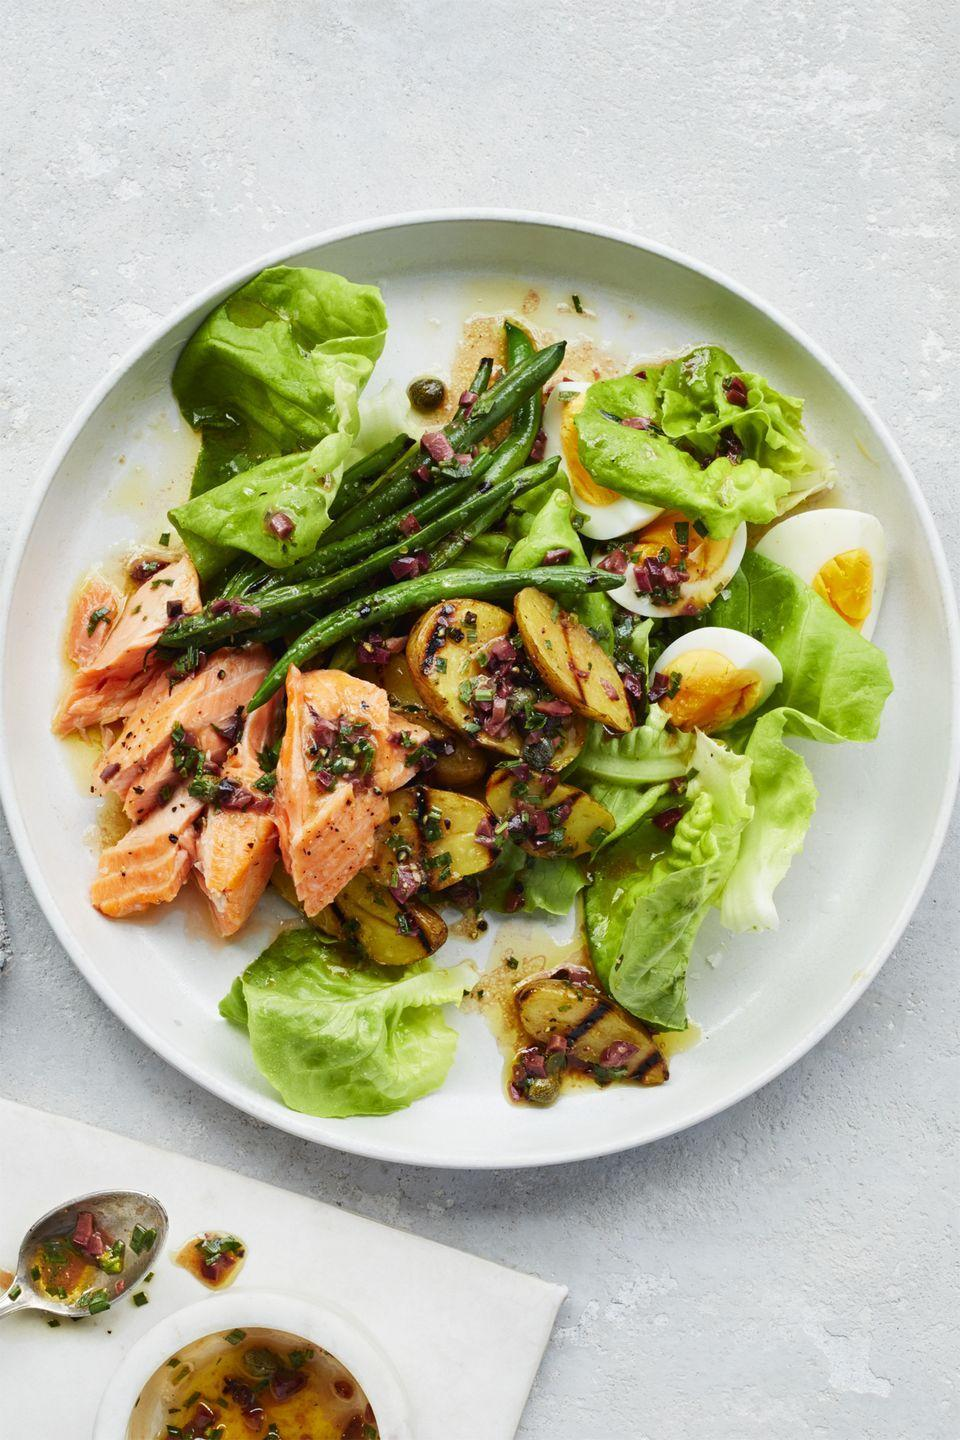 "<p>Eggs, potatoes, and green beans give this salmon-topped salad texture and flavor.</p><p><a href=""https://www.womansday.com/food-recipes/food-drinks/recipes/a59397/salmon-nicoise-salad-recipe/"" rel=""nofollow noopener"" target=""_blank"" data-ylk=""slk:Get the recipe for Salmon Niçoise Salad."" class=""link rapid-noclick-resp""><em>Get the recipe for Salmon Niçoise Salad.</em></a></p>"